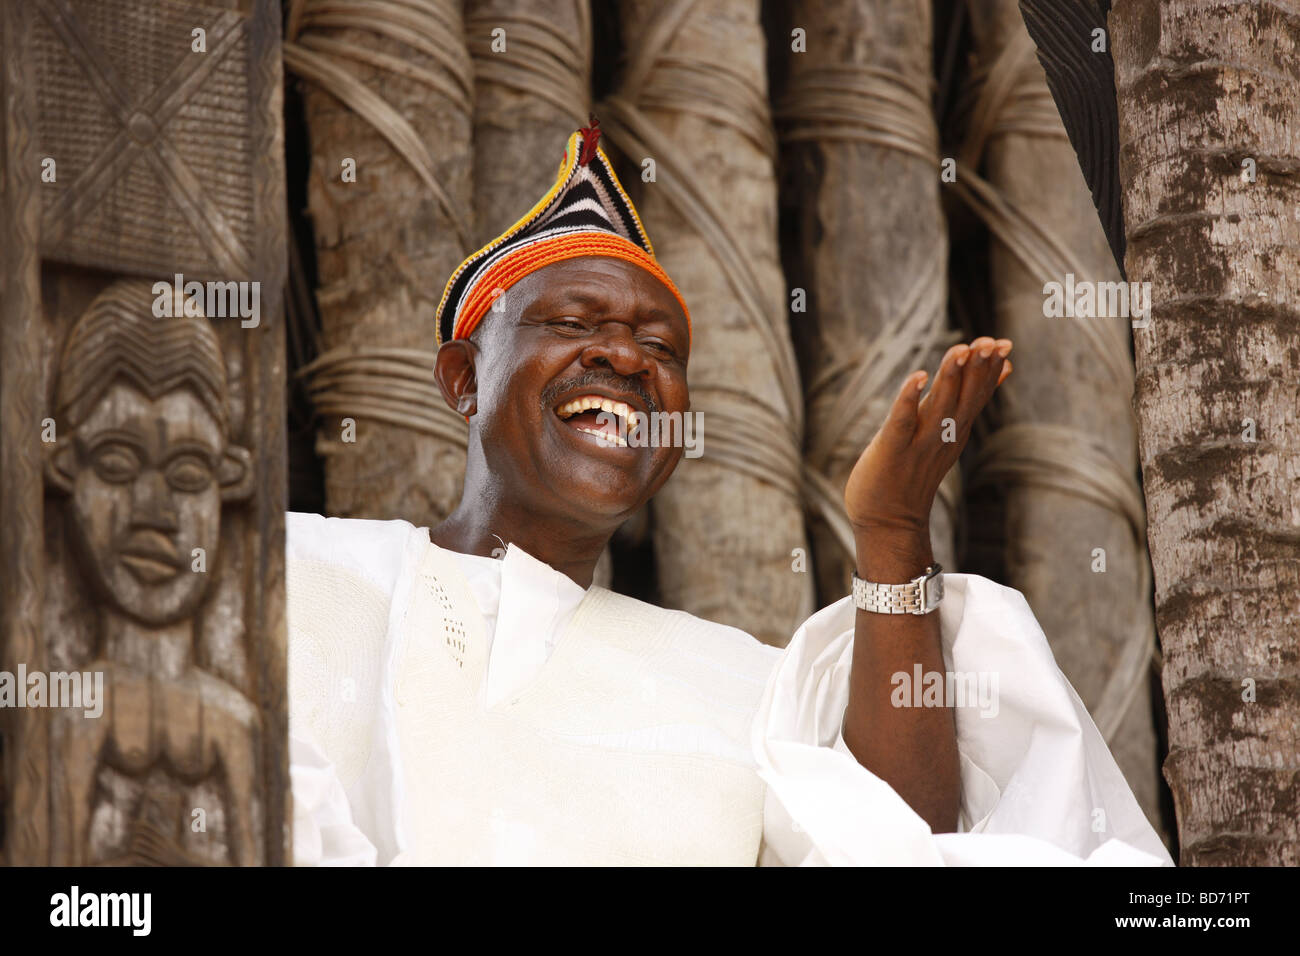 Fon Abumbi II, ruler and judge, chief farmstead, Bafut, West Cameroon, Cameroon, Africa - Stock Image